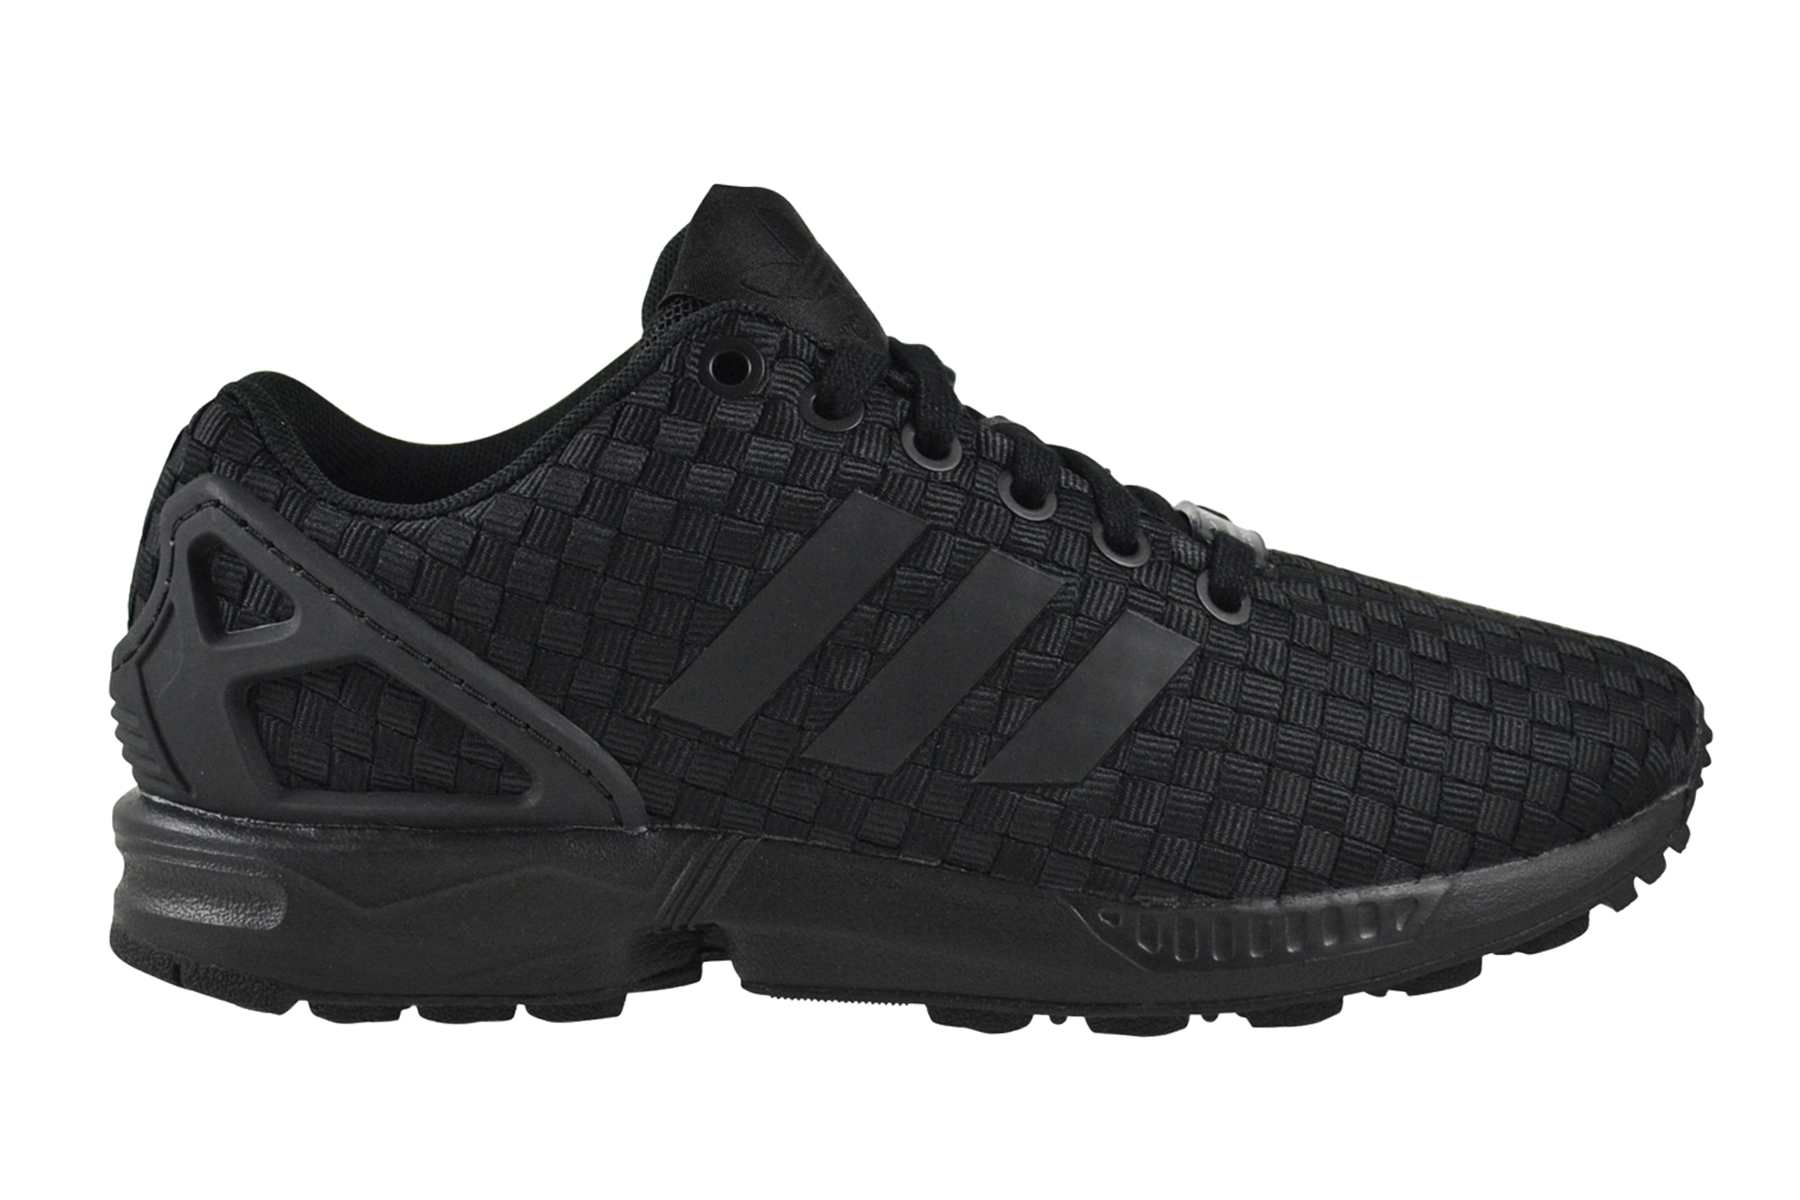 Zx Flux Schuh from ADIDAS on 21 Buttons